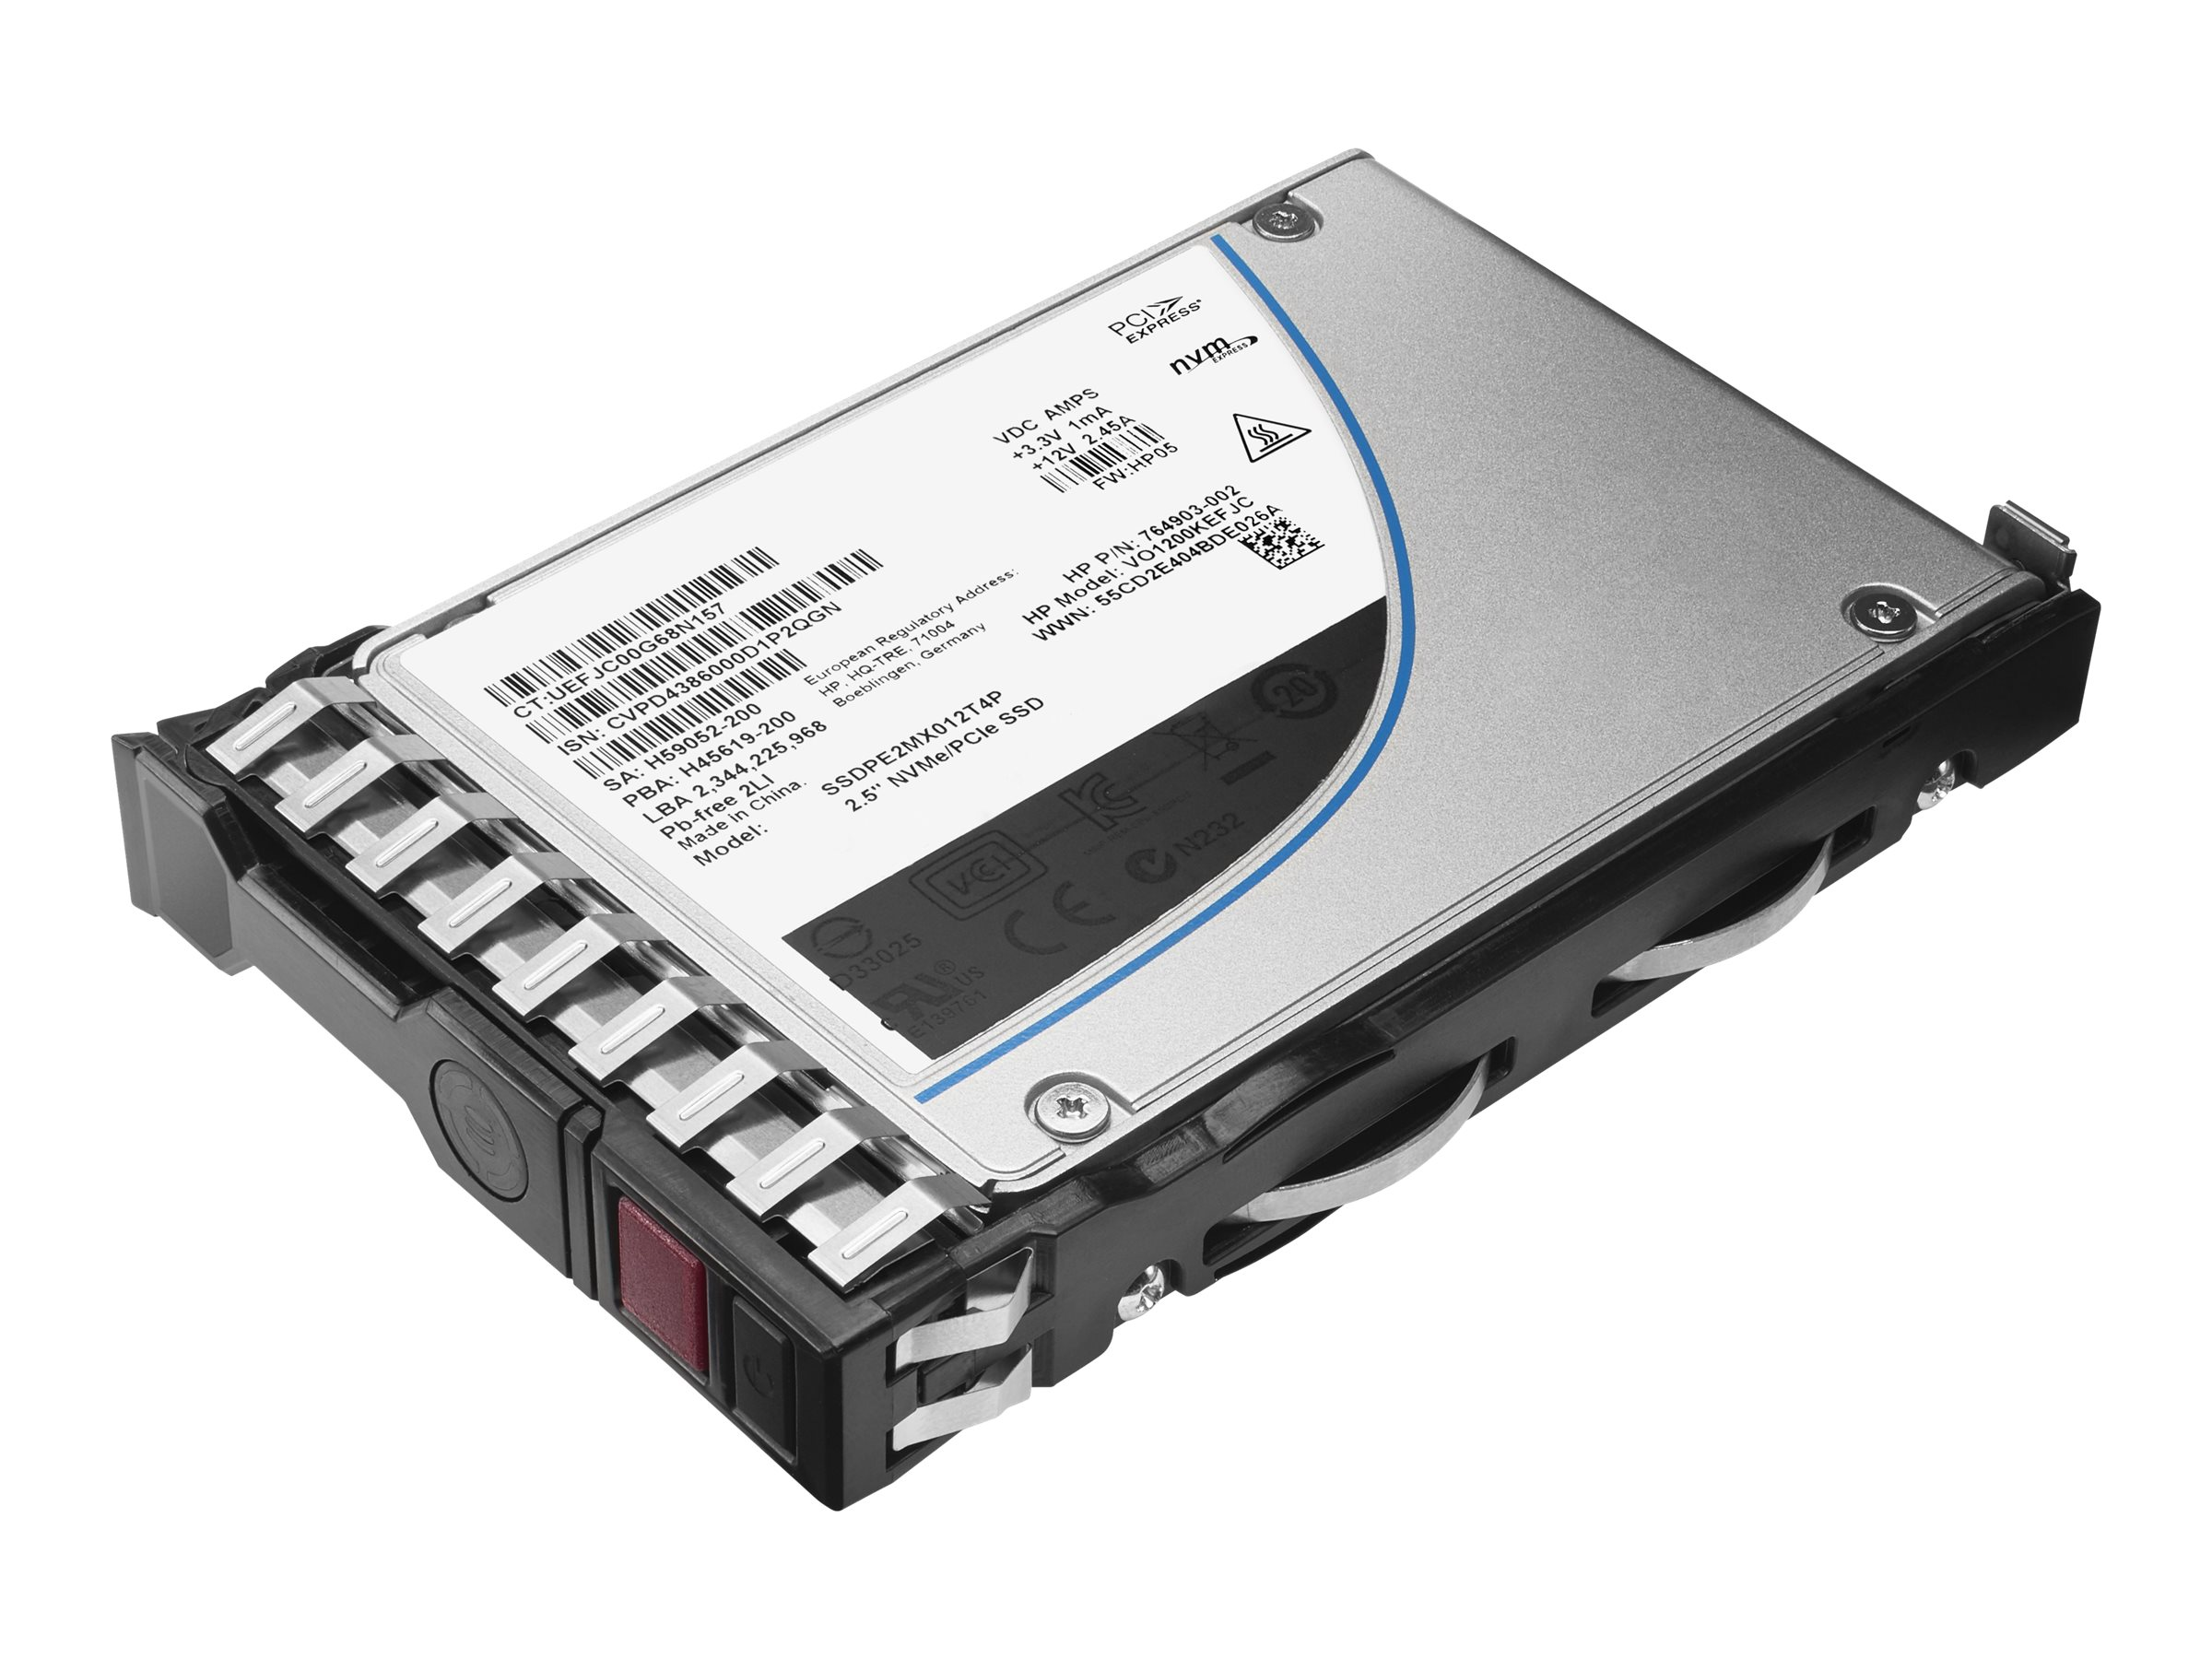 HPE Mixed Use-2 - Solid-State-Disk - 480 GB - Hot-Swap - 8.9 cm LFF (3.5